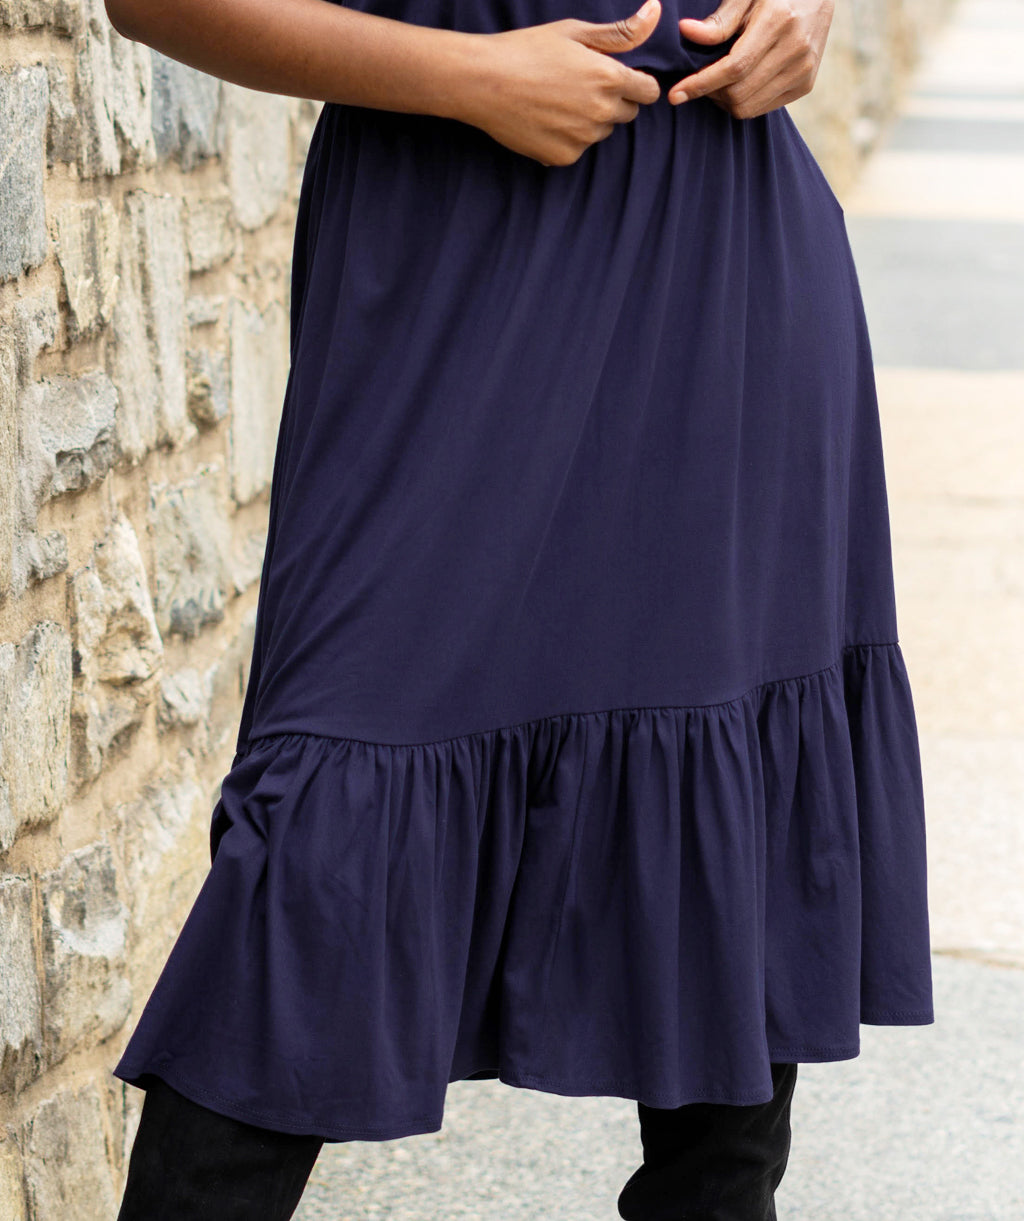 MURRAY tiered skirt in Navy